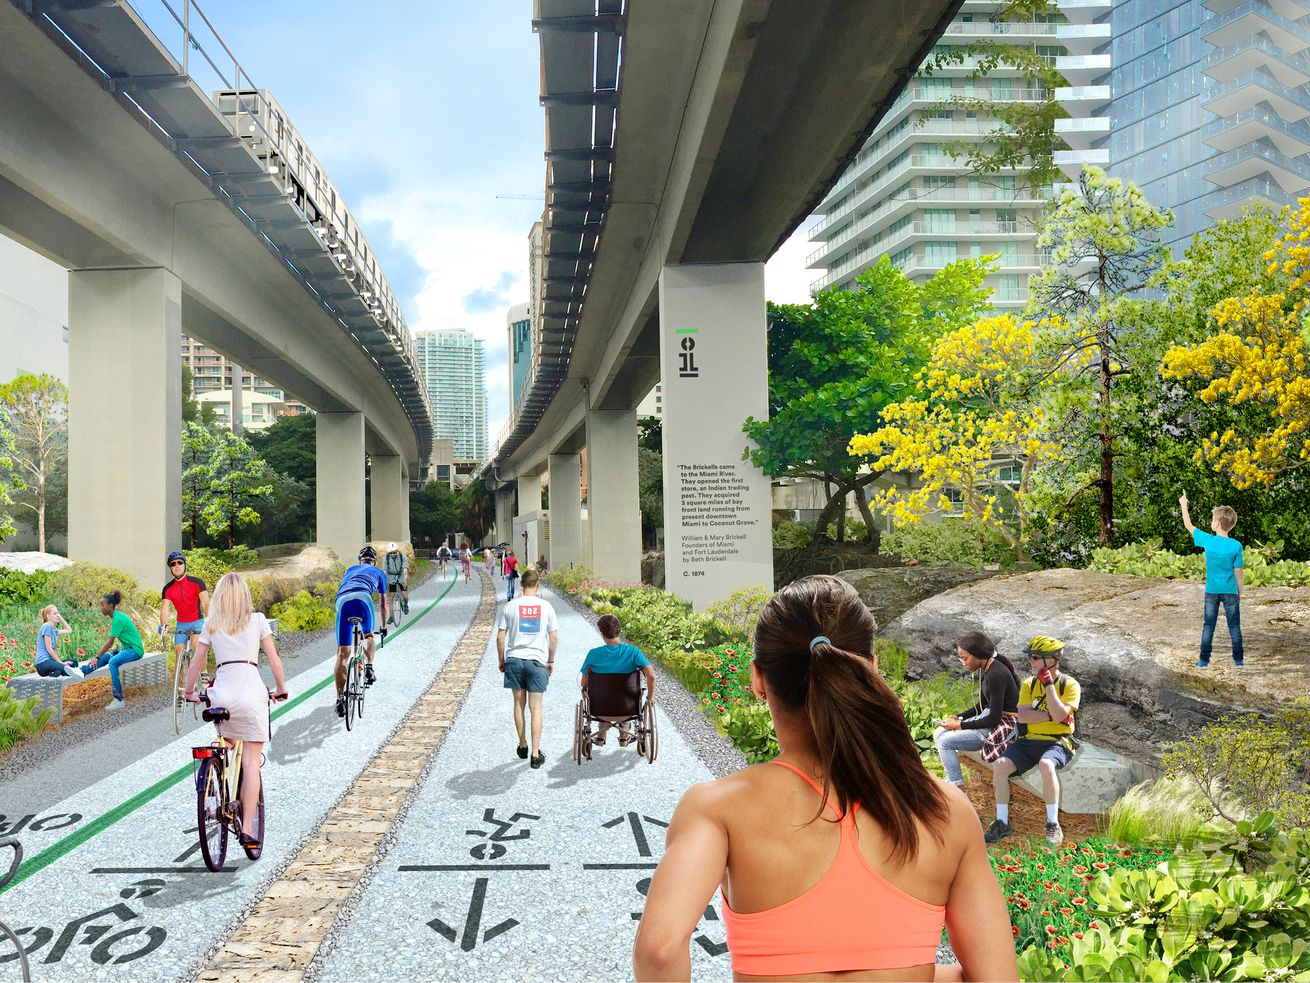 A rendering of the Underline, a 10-mile linear park and $120 million redevelopment of open space under a span of Metrorail tracks roughly parallel to the north end of the Miami River.